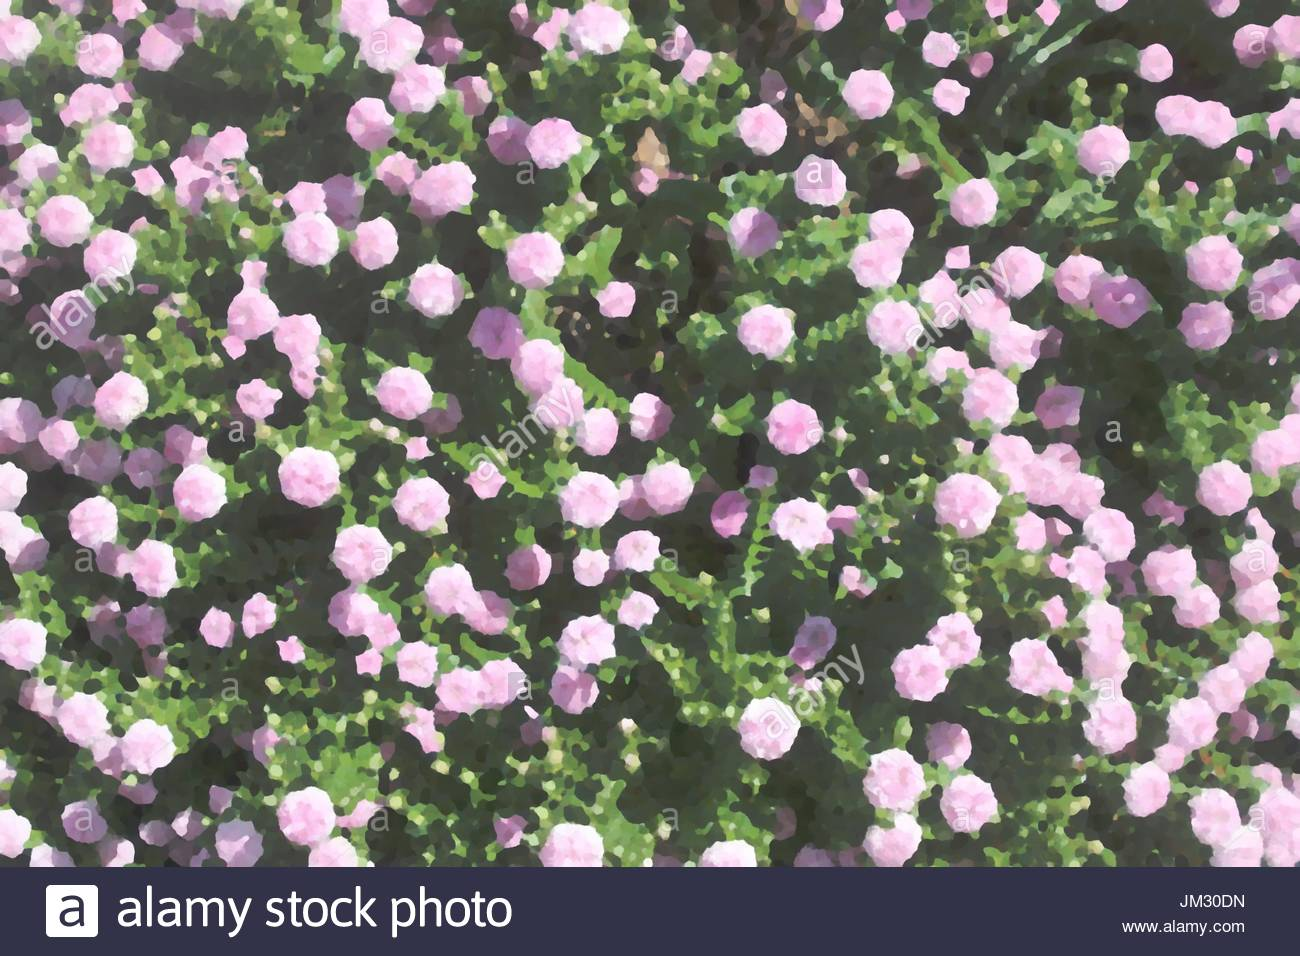 Digitally modified pink and green millefleur decor in impressionist style for background use - Stock Image